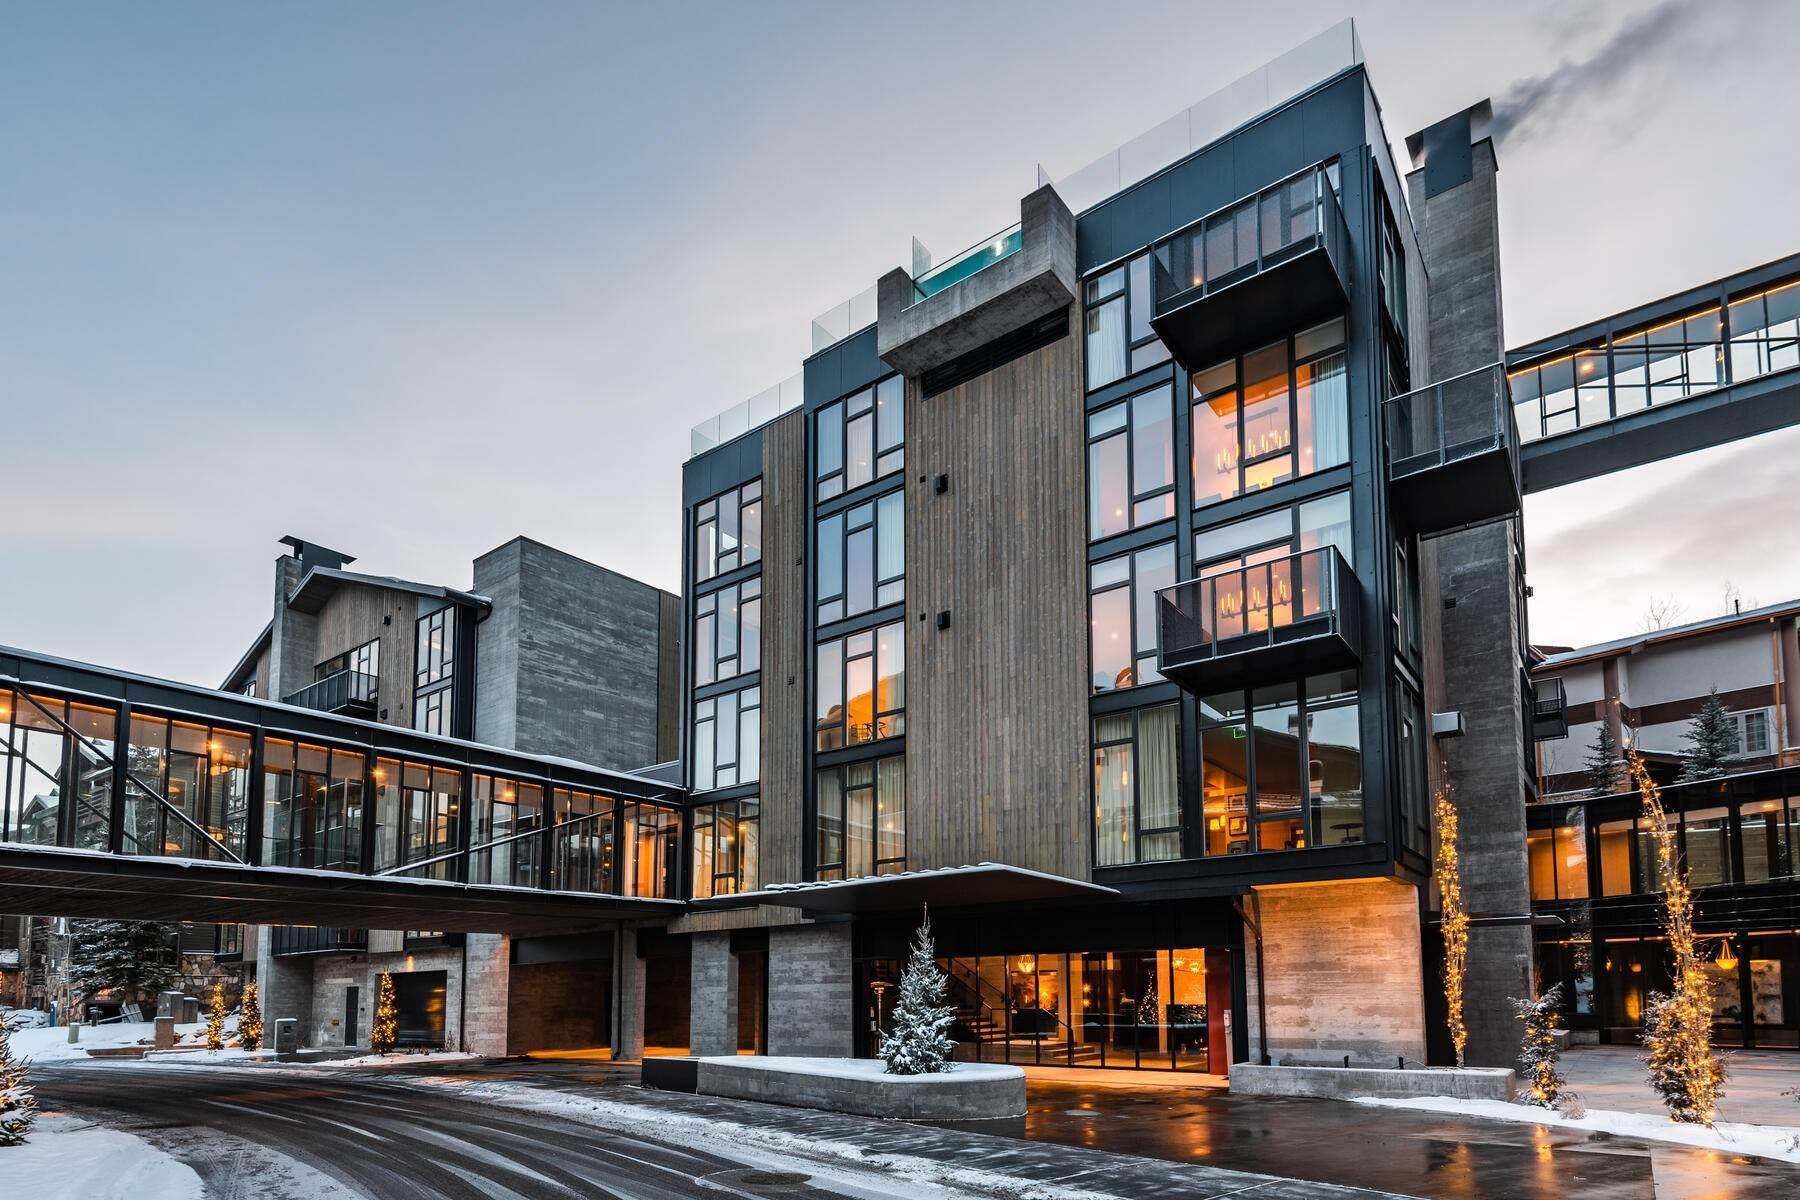 Condominiums for Sale at Boutique Luxury Hotel Residences in Prime Deer Valley Silver Lake Village 7520 Royal Street #321 Park City, Utah 84060 United States